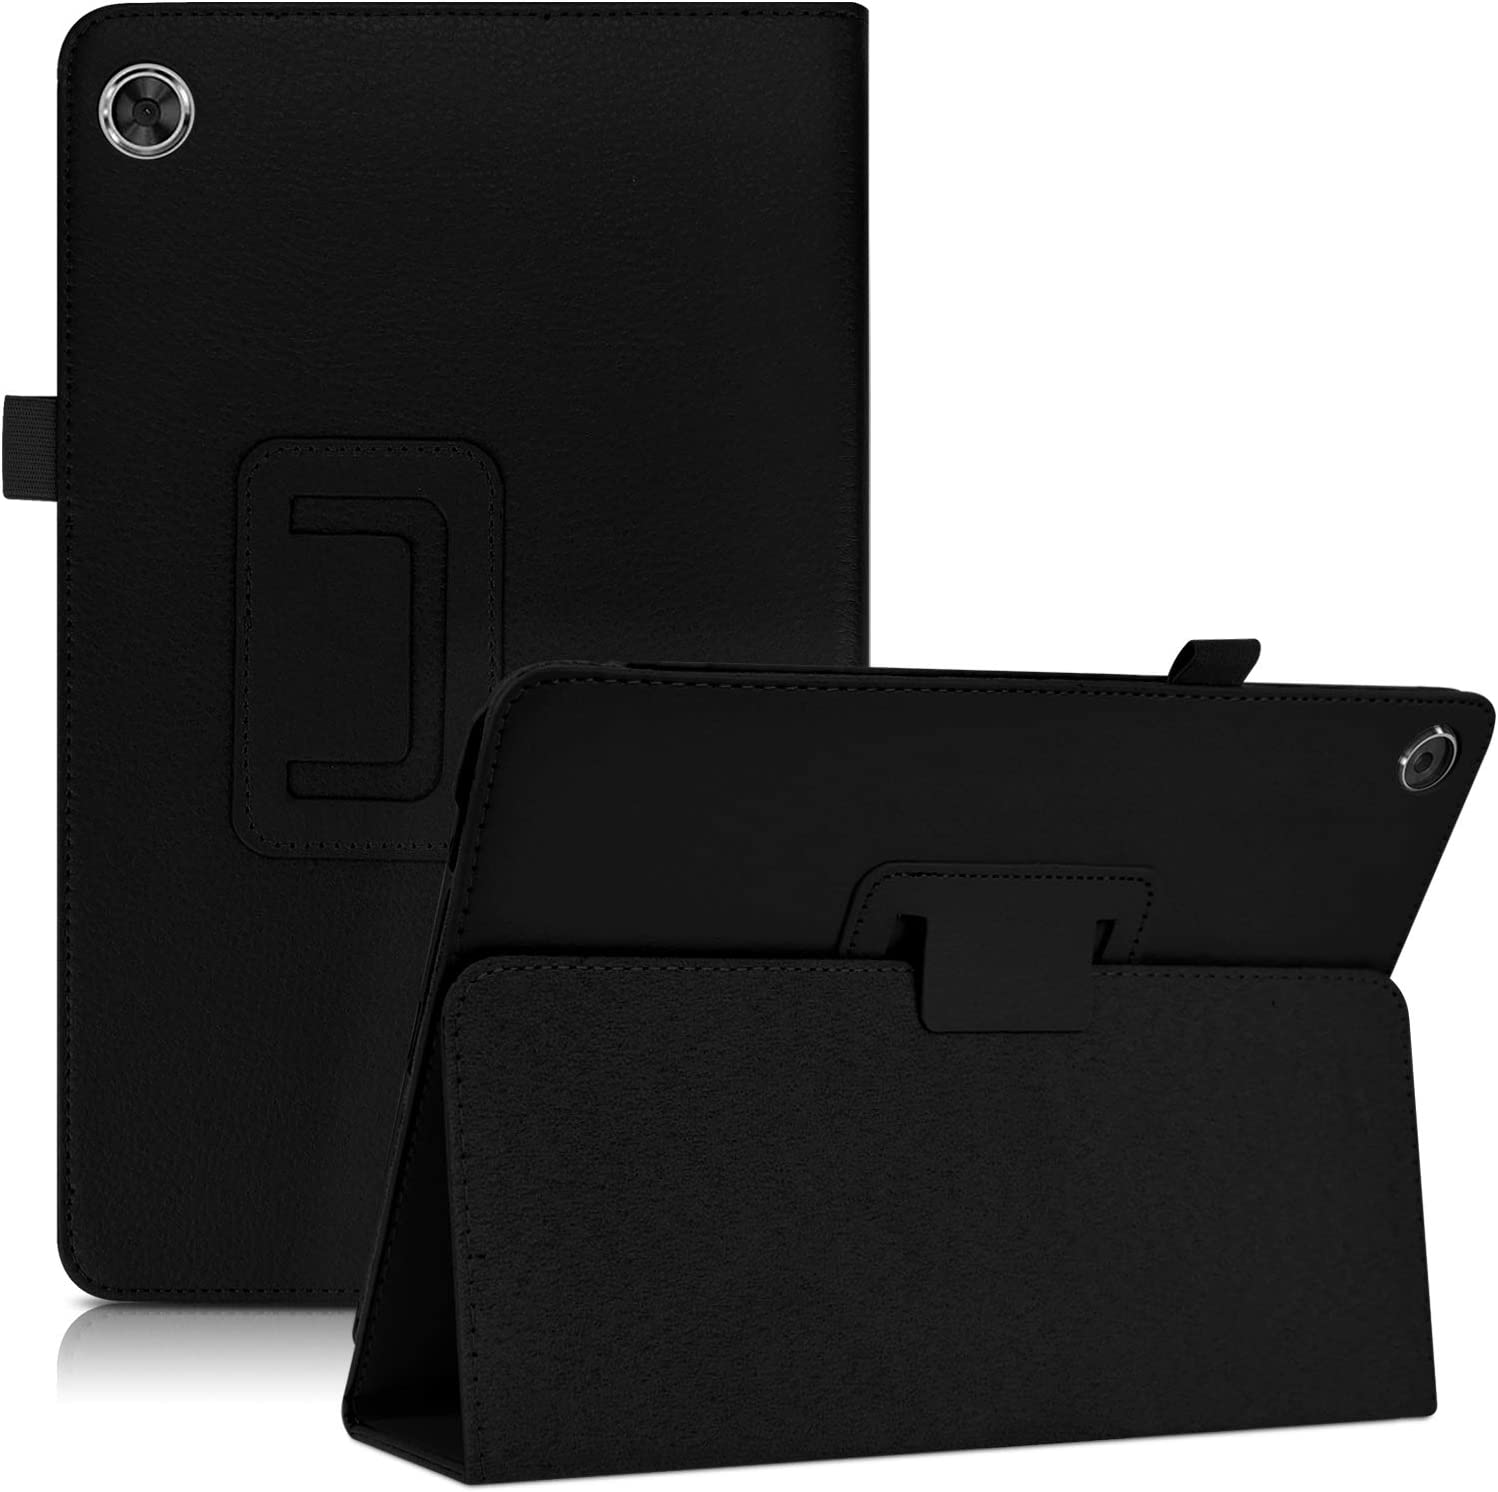 DETUOSI Leather Case Compatible with Lenovo Tab M10 FHD Plus 10.3 Inch 2020 [2nd Generation] (Model: TB-X606F/X606X) Tablet, Multi-Angle Viewing PU Leather Protective Shell Cover with Stand #Black